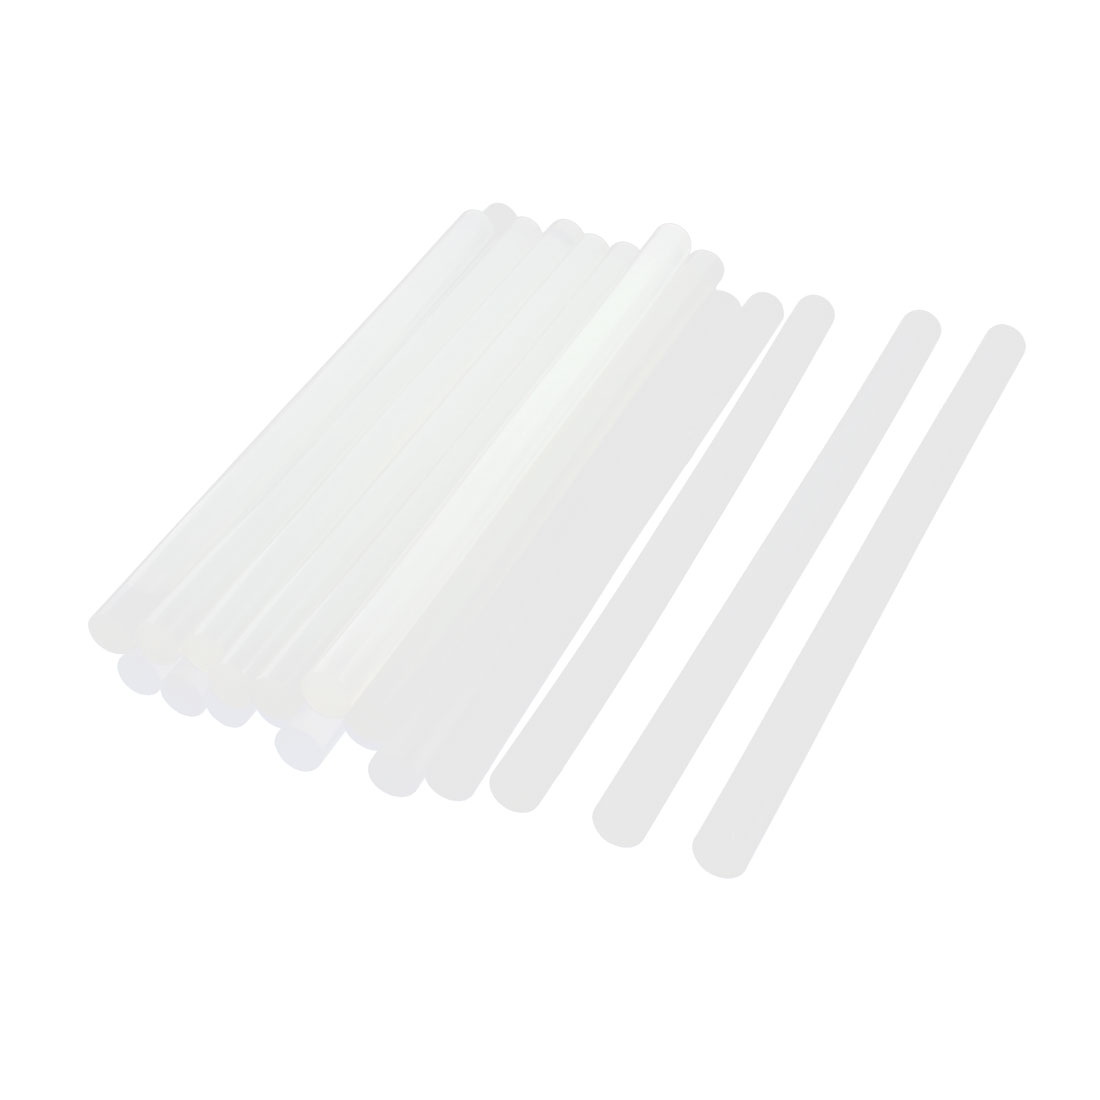 20Pcs 11mmx200mm Clear White Plastic Hot Melt Glue Gun Adhesive Stick for Crafts Soldering Iron